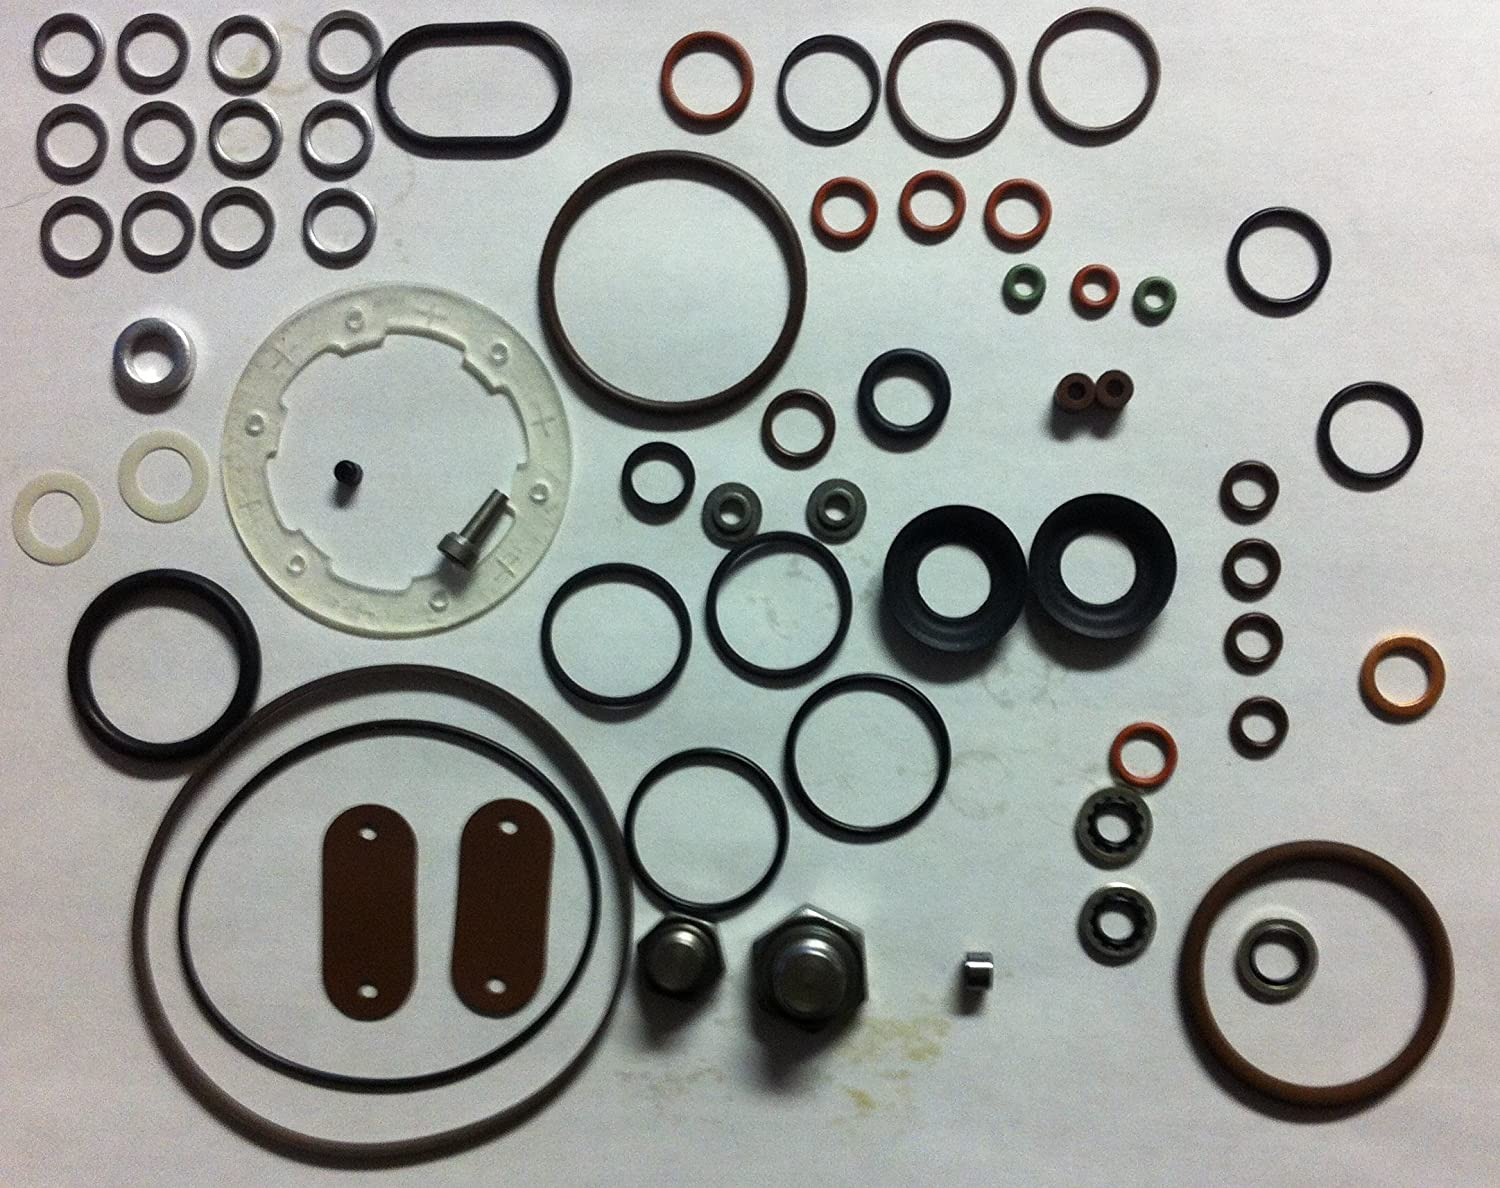 Amazon.com : Aftermarket Kit Replaces 24371 Stanadyne and Roosa ...